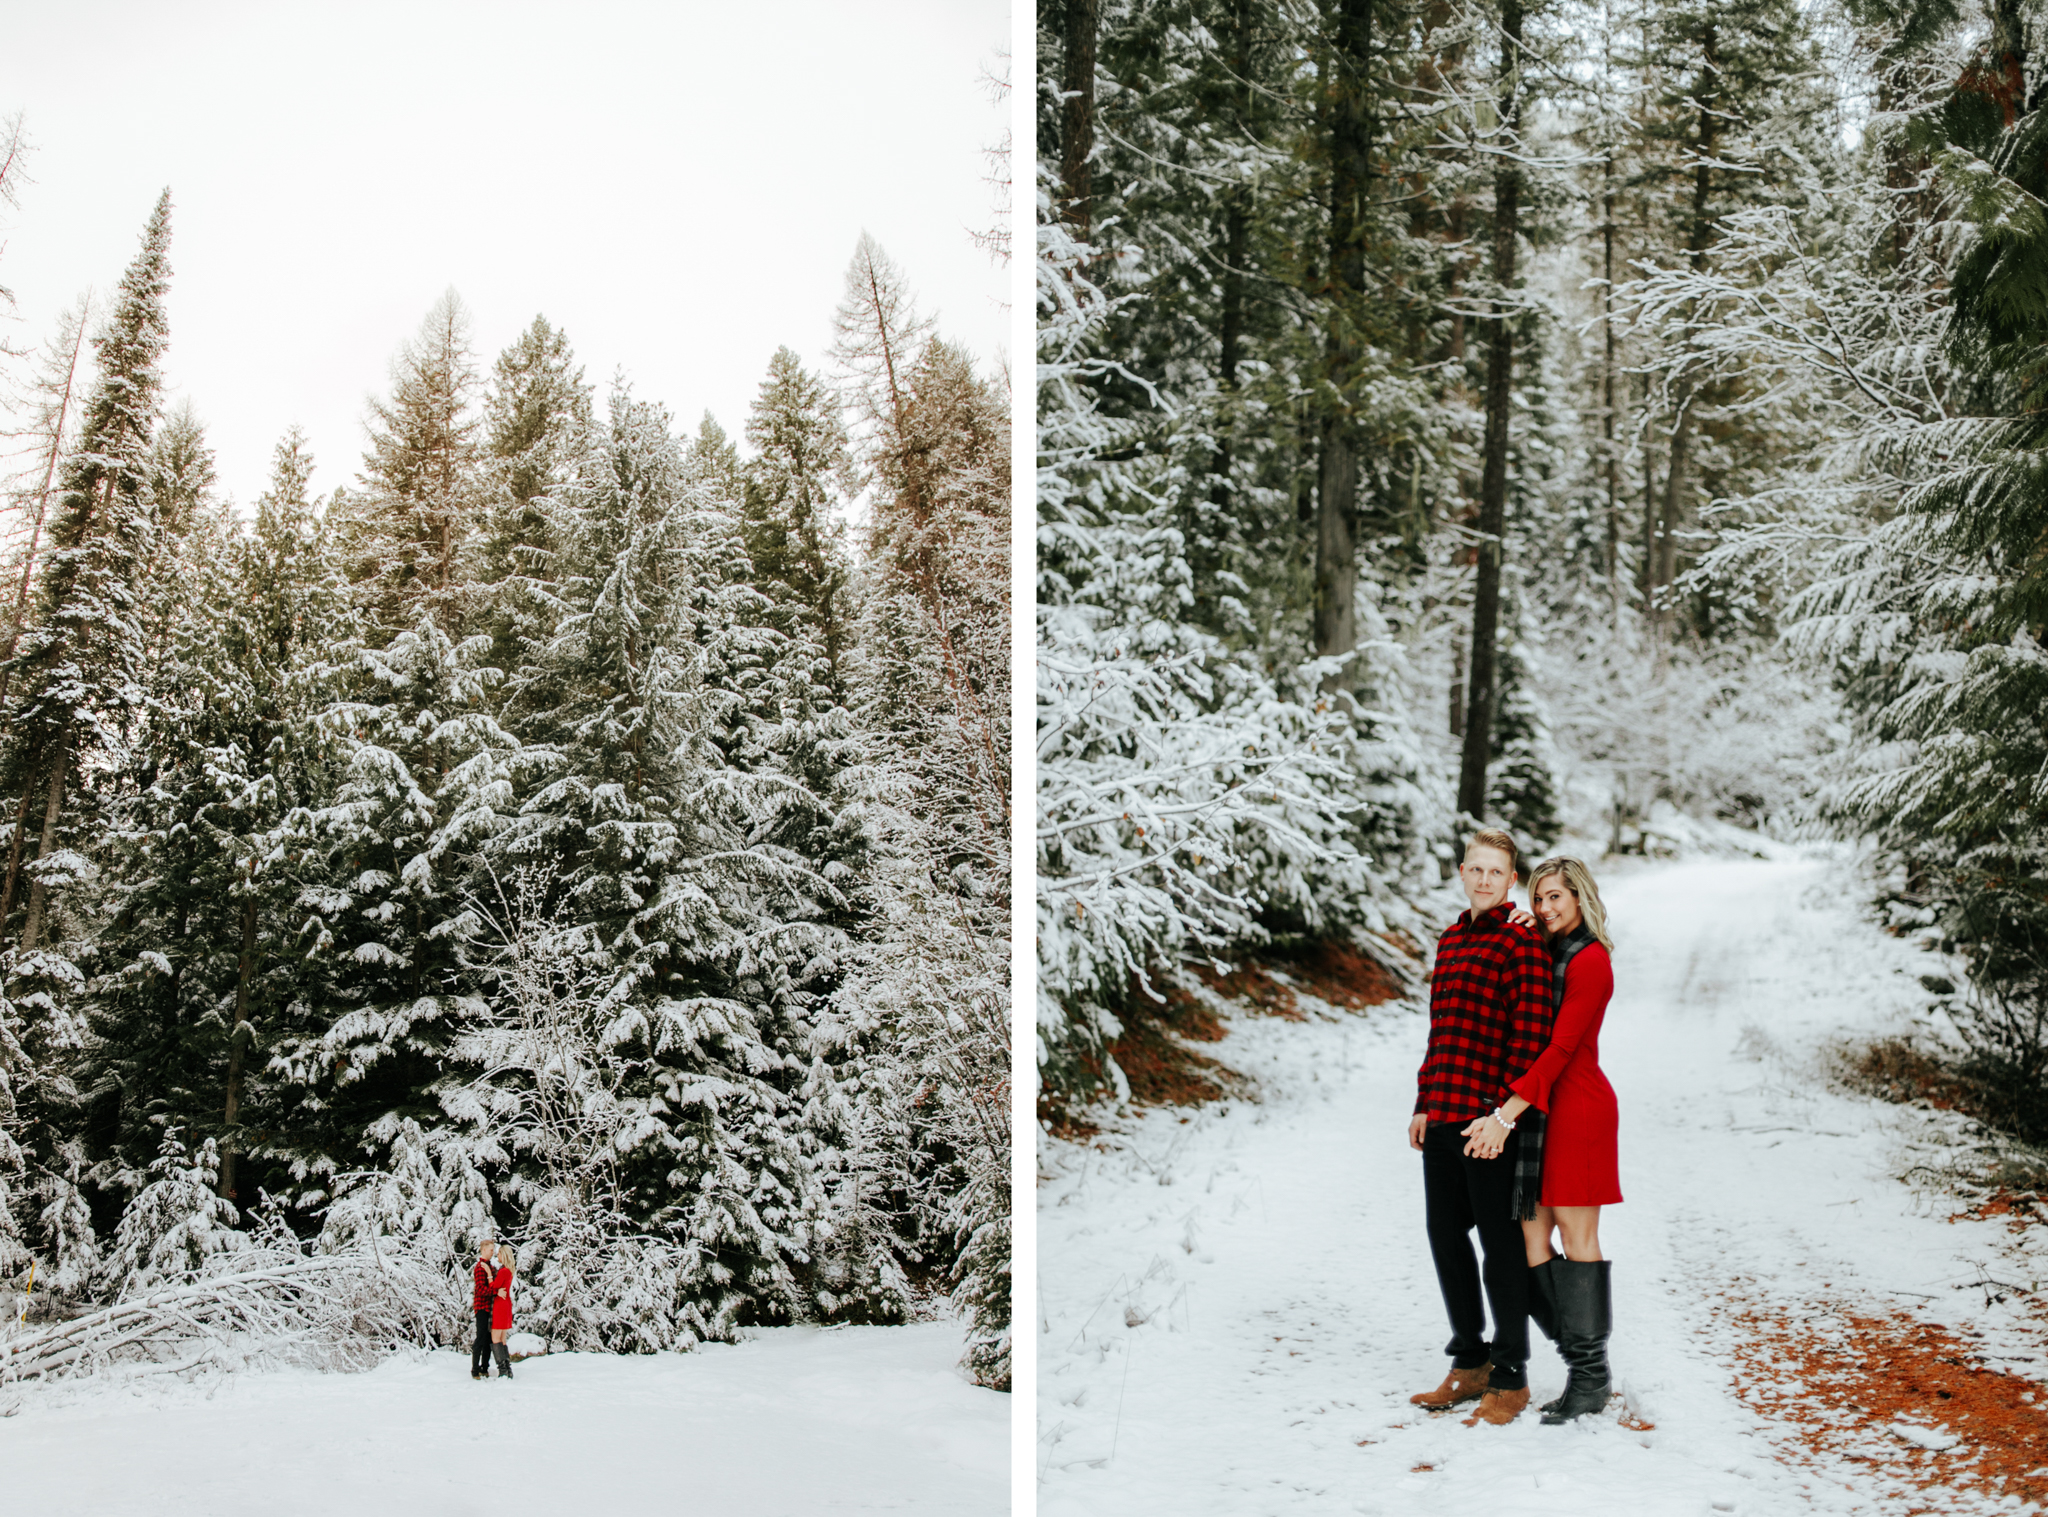 love-and-be-loved-photography-mountain-engagement-ashlyn-rob-perfect-fit-4-u-photo-image-picture-5.jpg